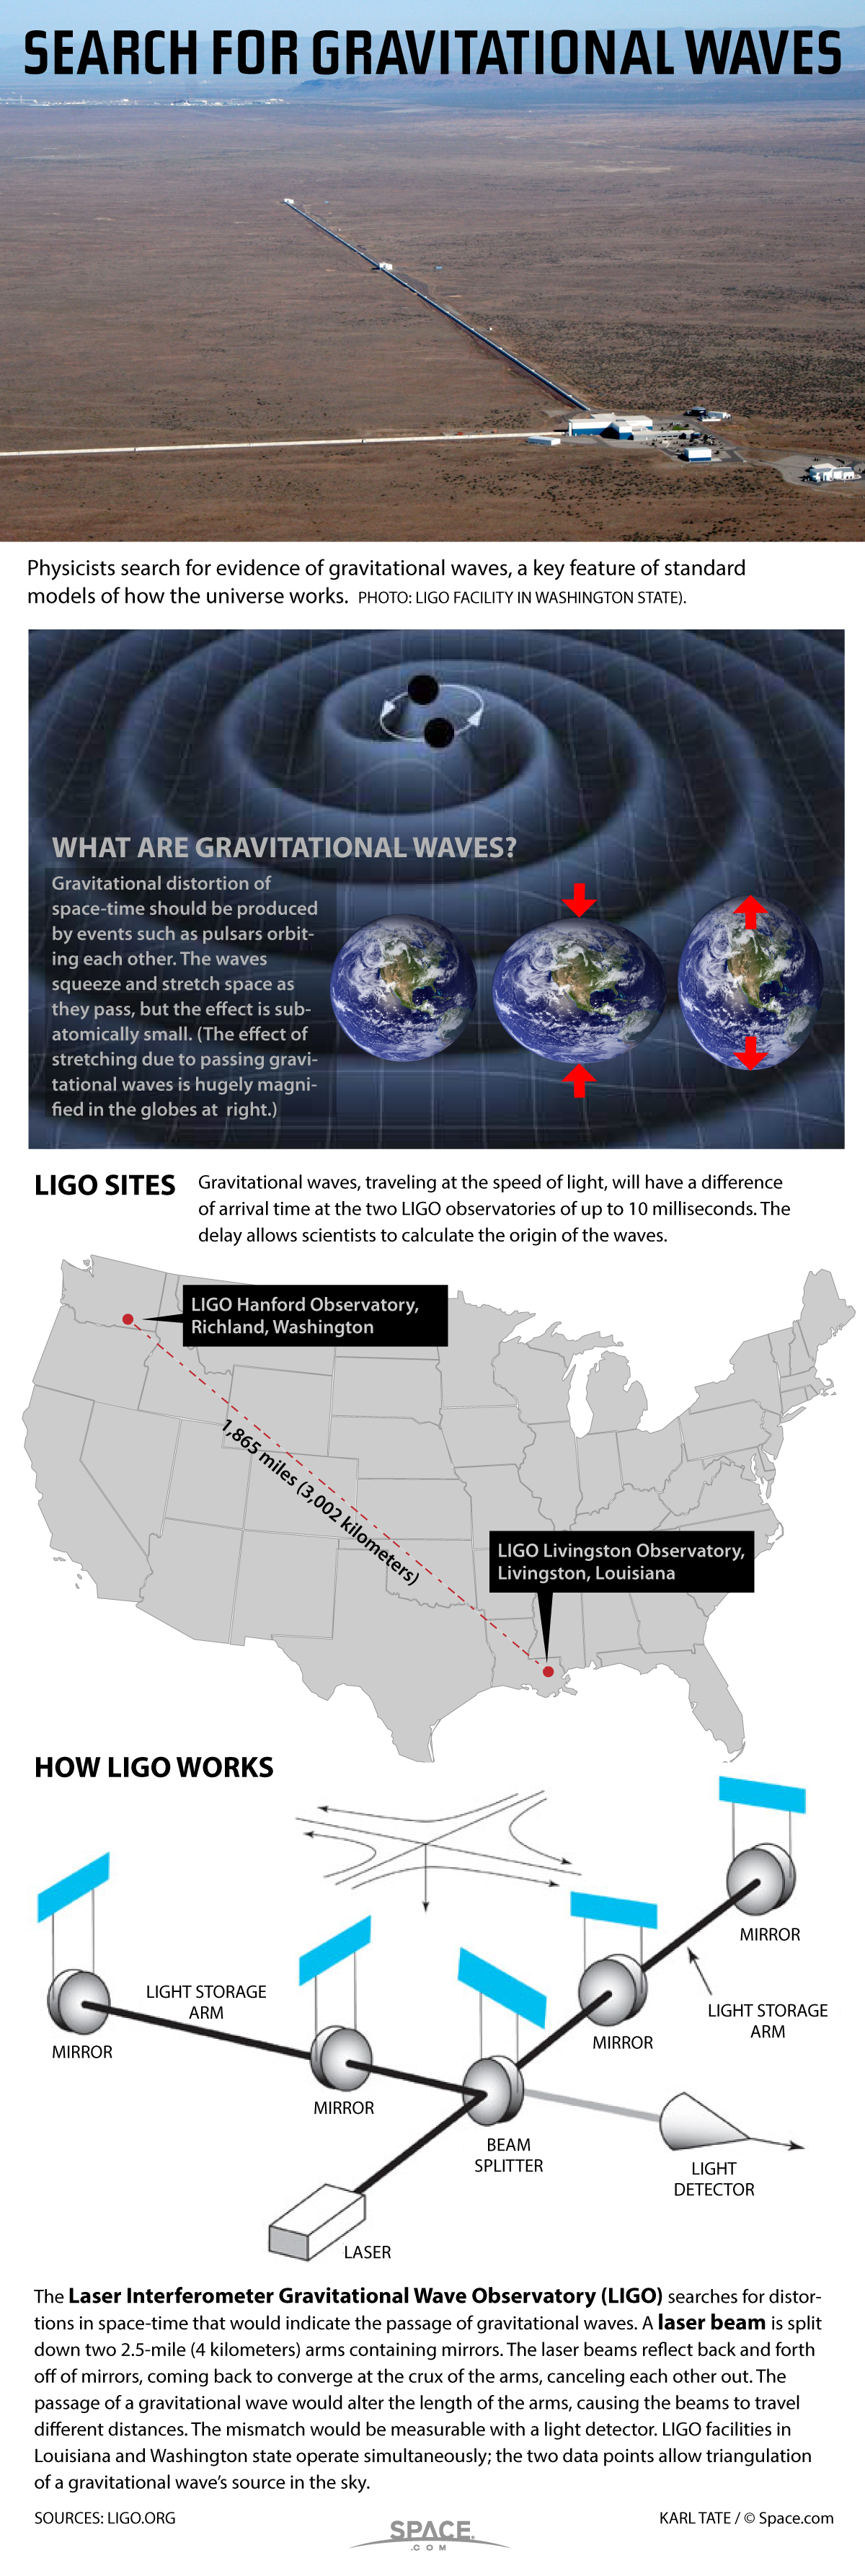 Hunting Gravitational Waves with Lasers: How Project LIGO Works (Infographic)